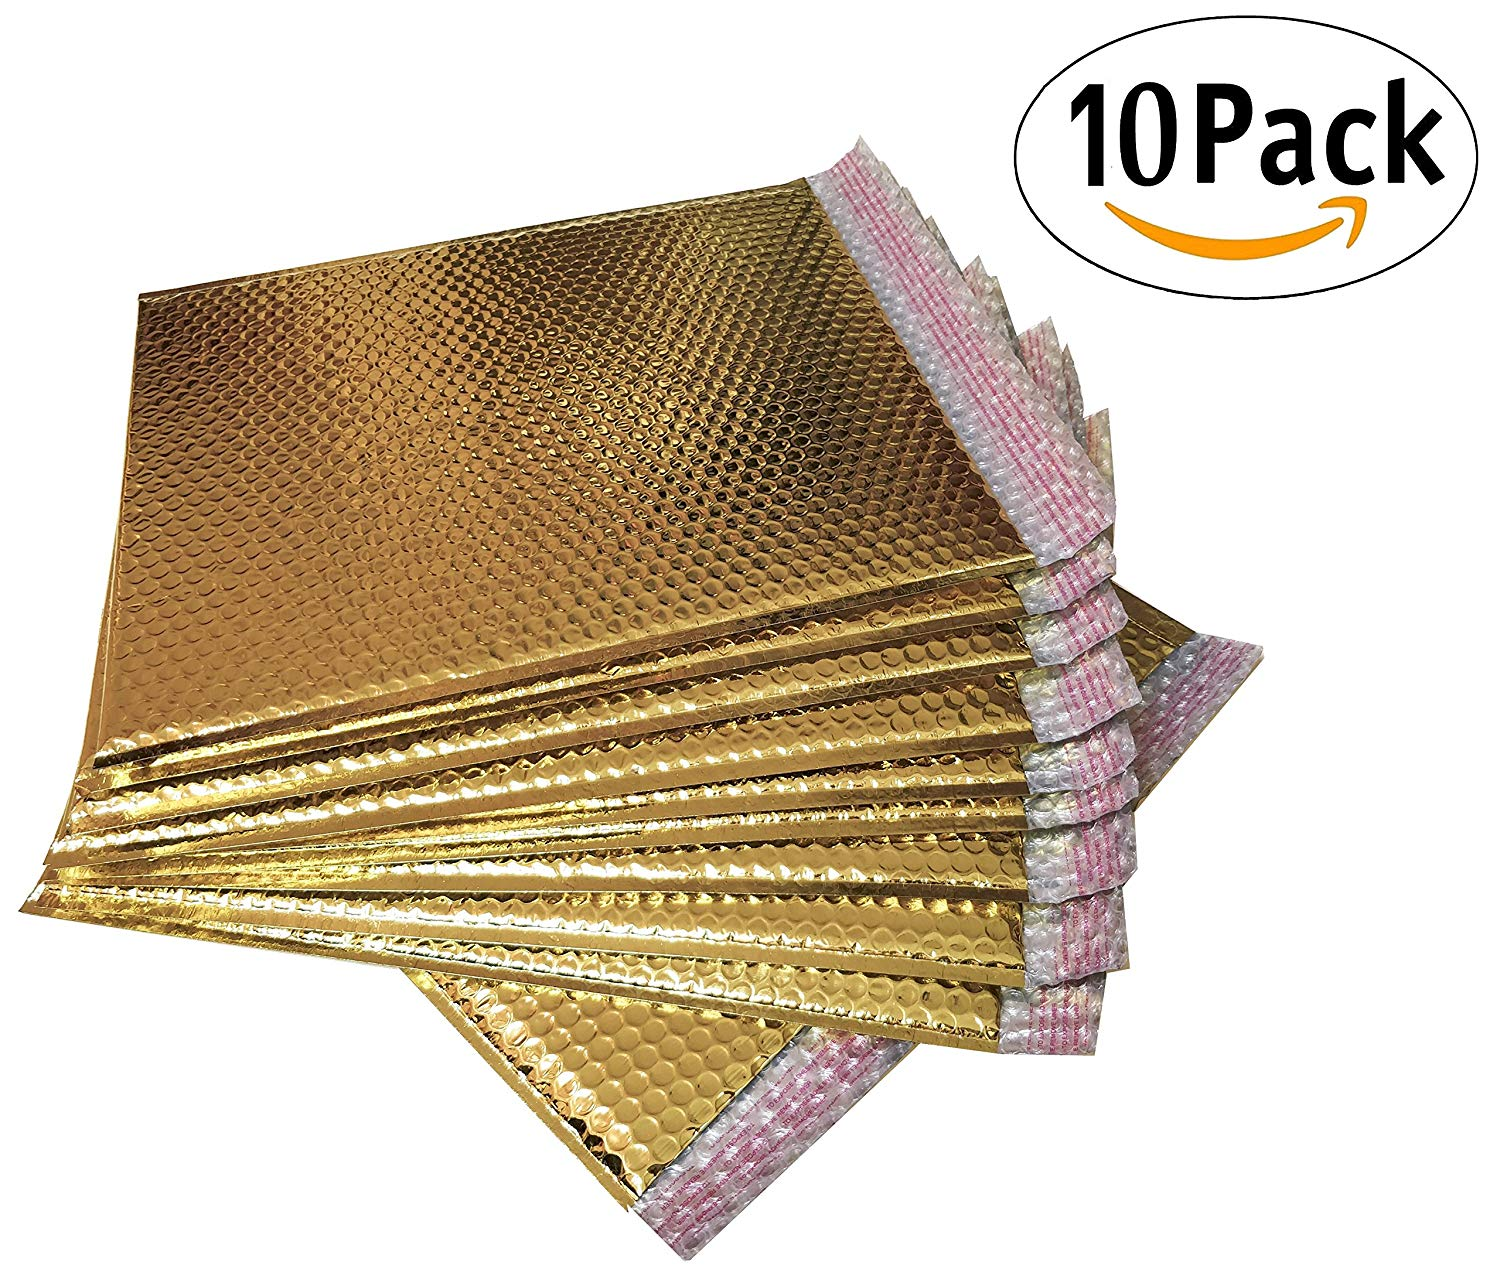 20 Pack Metallic Bubble mailers 7 x 6.75. Gold padded envelopes 7 x 6 3/4. Glamour bubble mailers Peel & Self Sealing cushion packaging mailers. Poly mailing packing wrapping shipping envelopes.